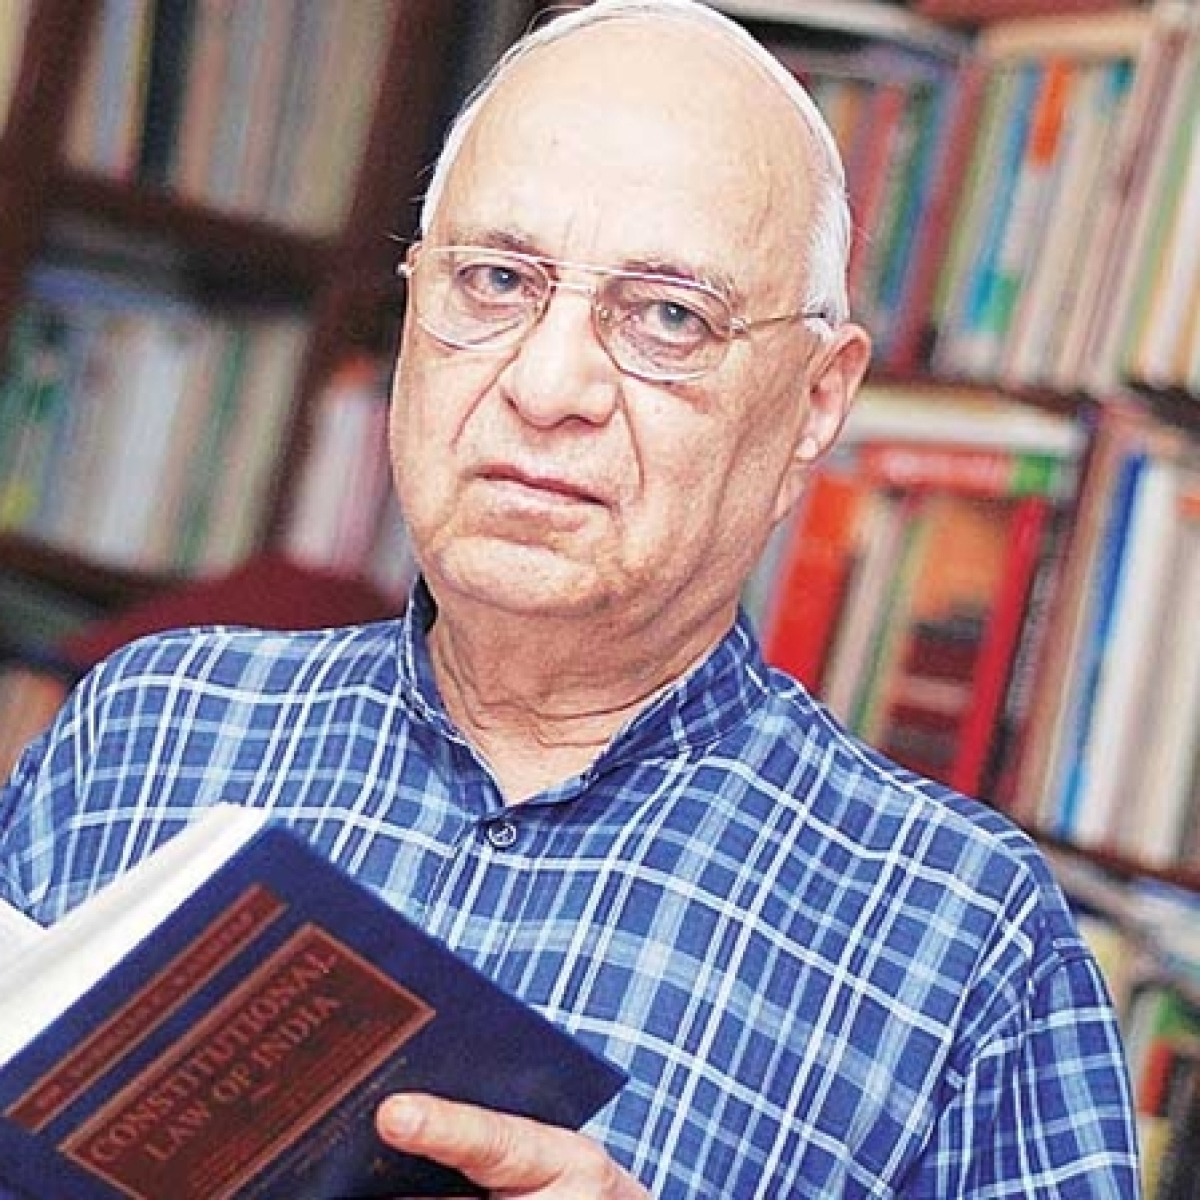 No prospect of President's rule, says well-known constitutional expert Subhash Kashyap